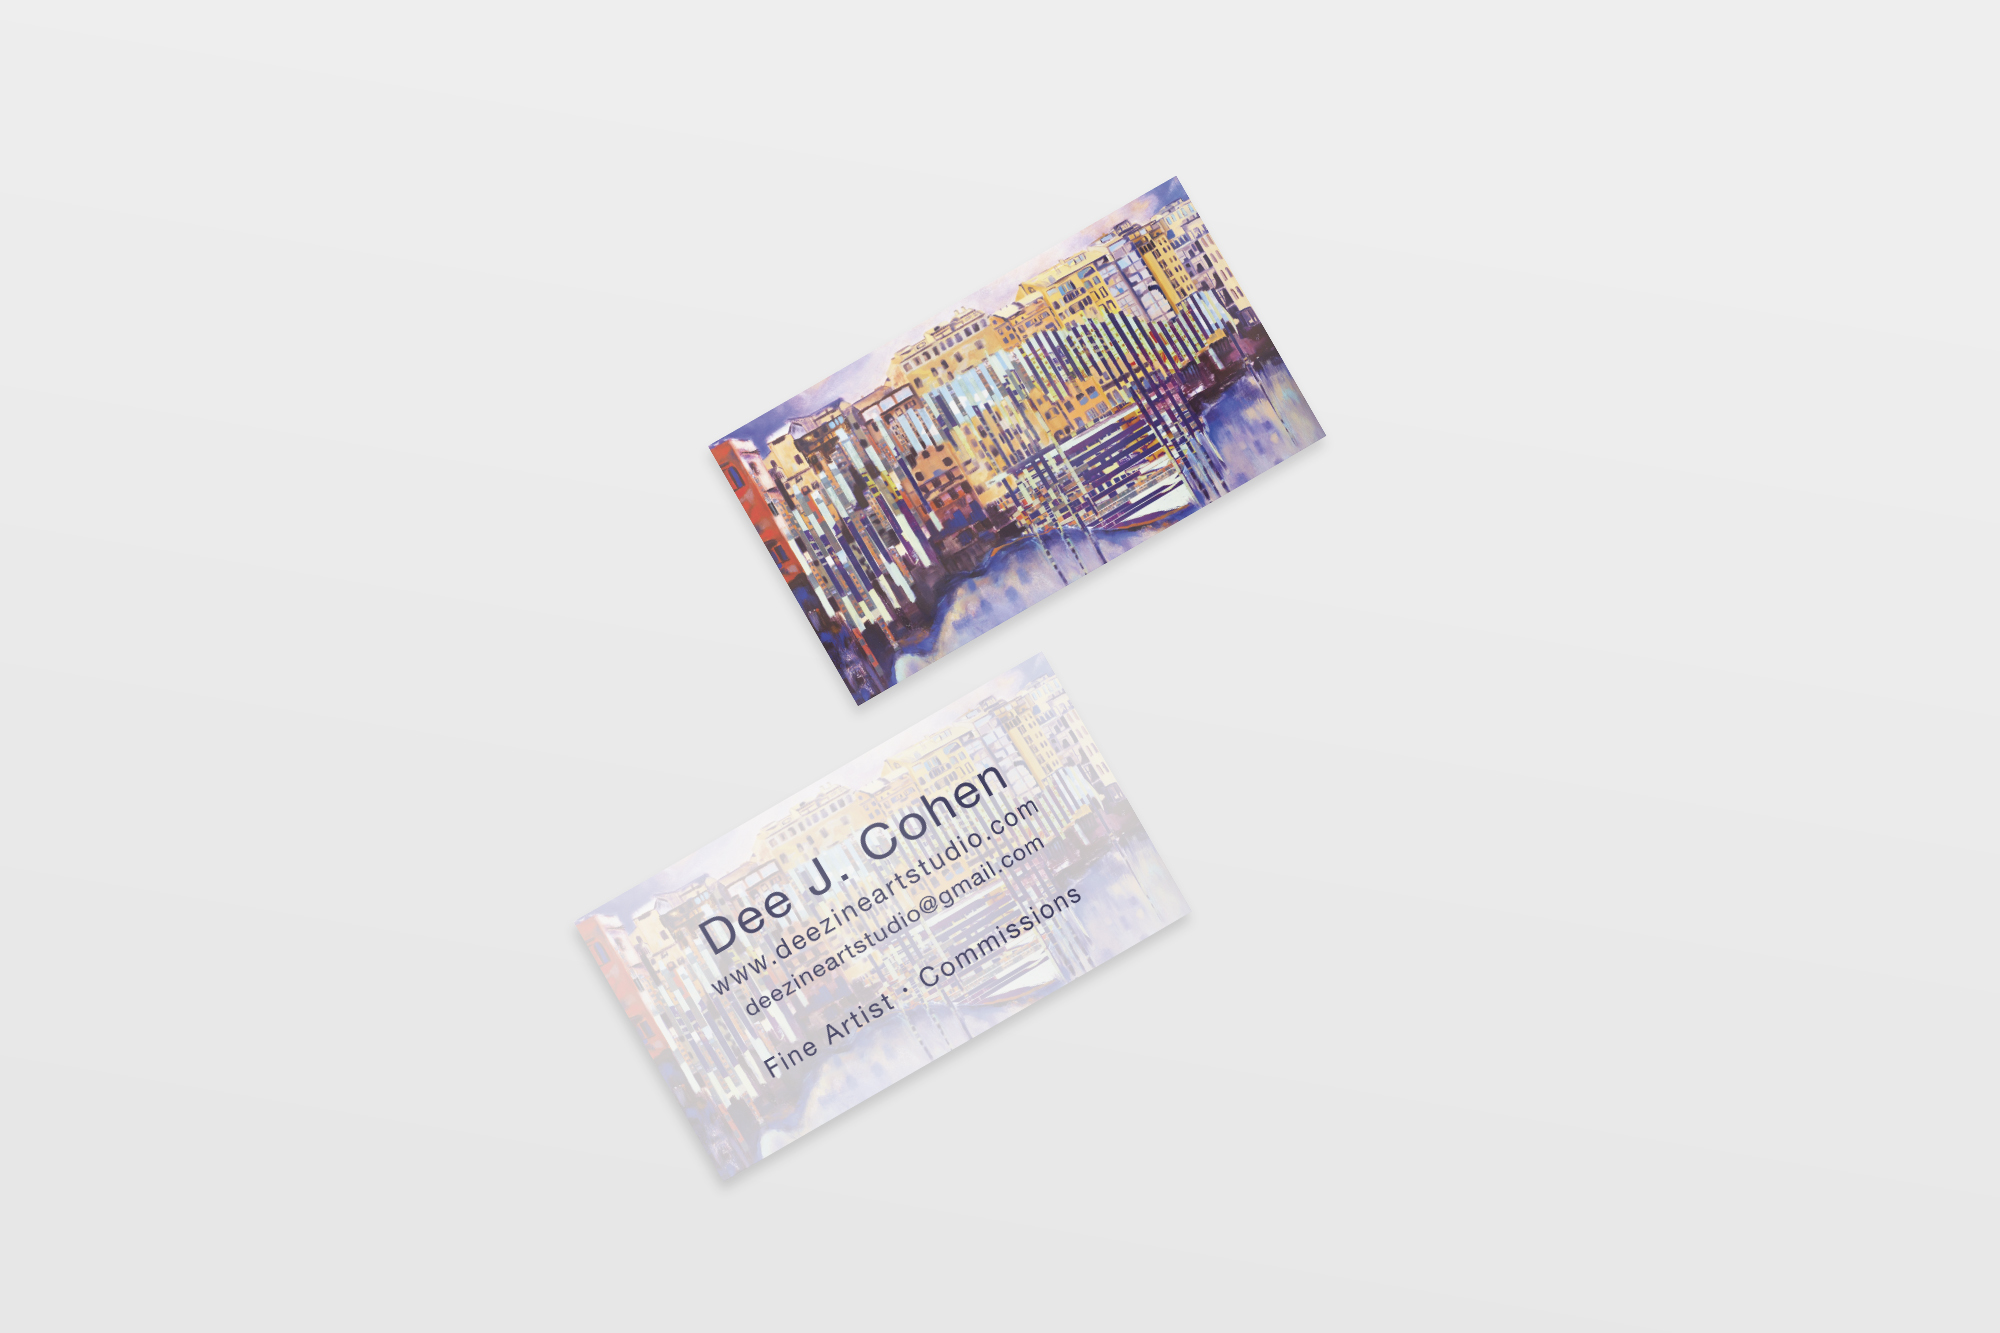 GeenaMatuson_BusinessCard_DeeCohen_Oscillations_2015.jpg